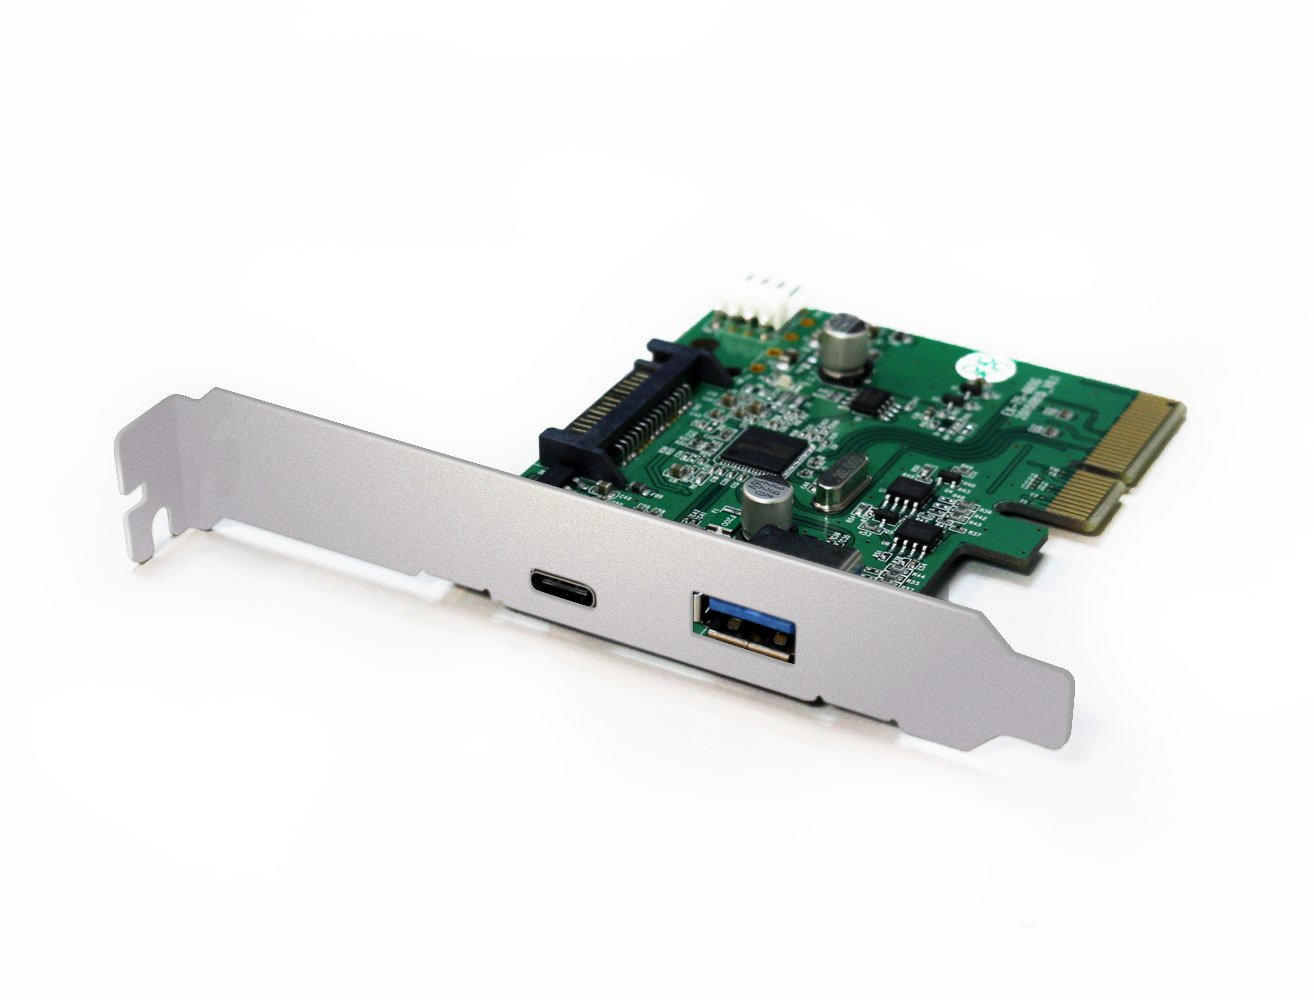 Archgon USB 3.1 GEN II (Max. 10Gbps) PCI-Express Adapter Card 1 USB Type C and 1 USB Type A (USB 3.1 A + C) Support UASP Mode